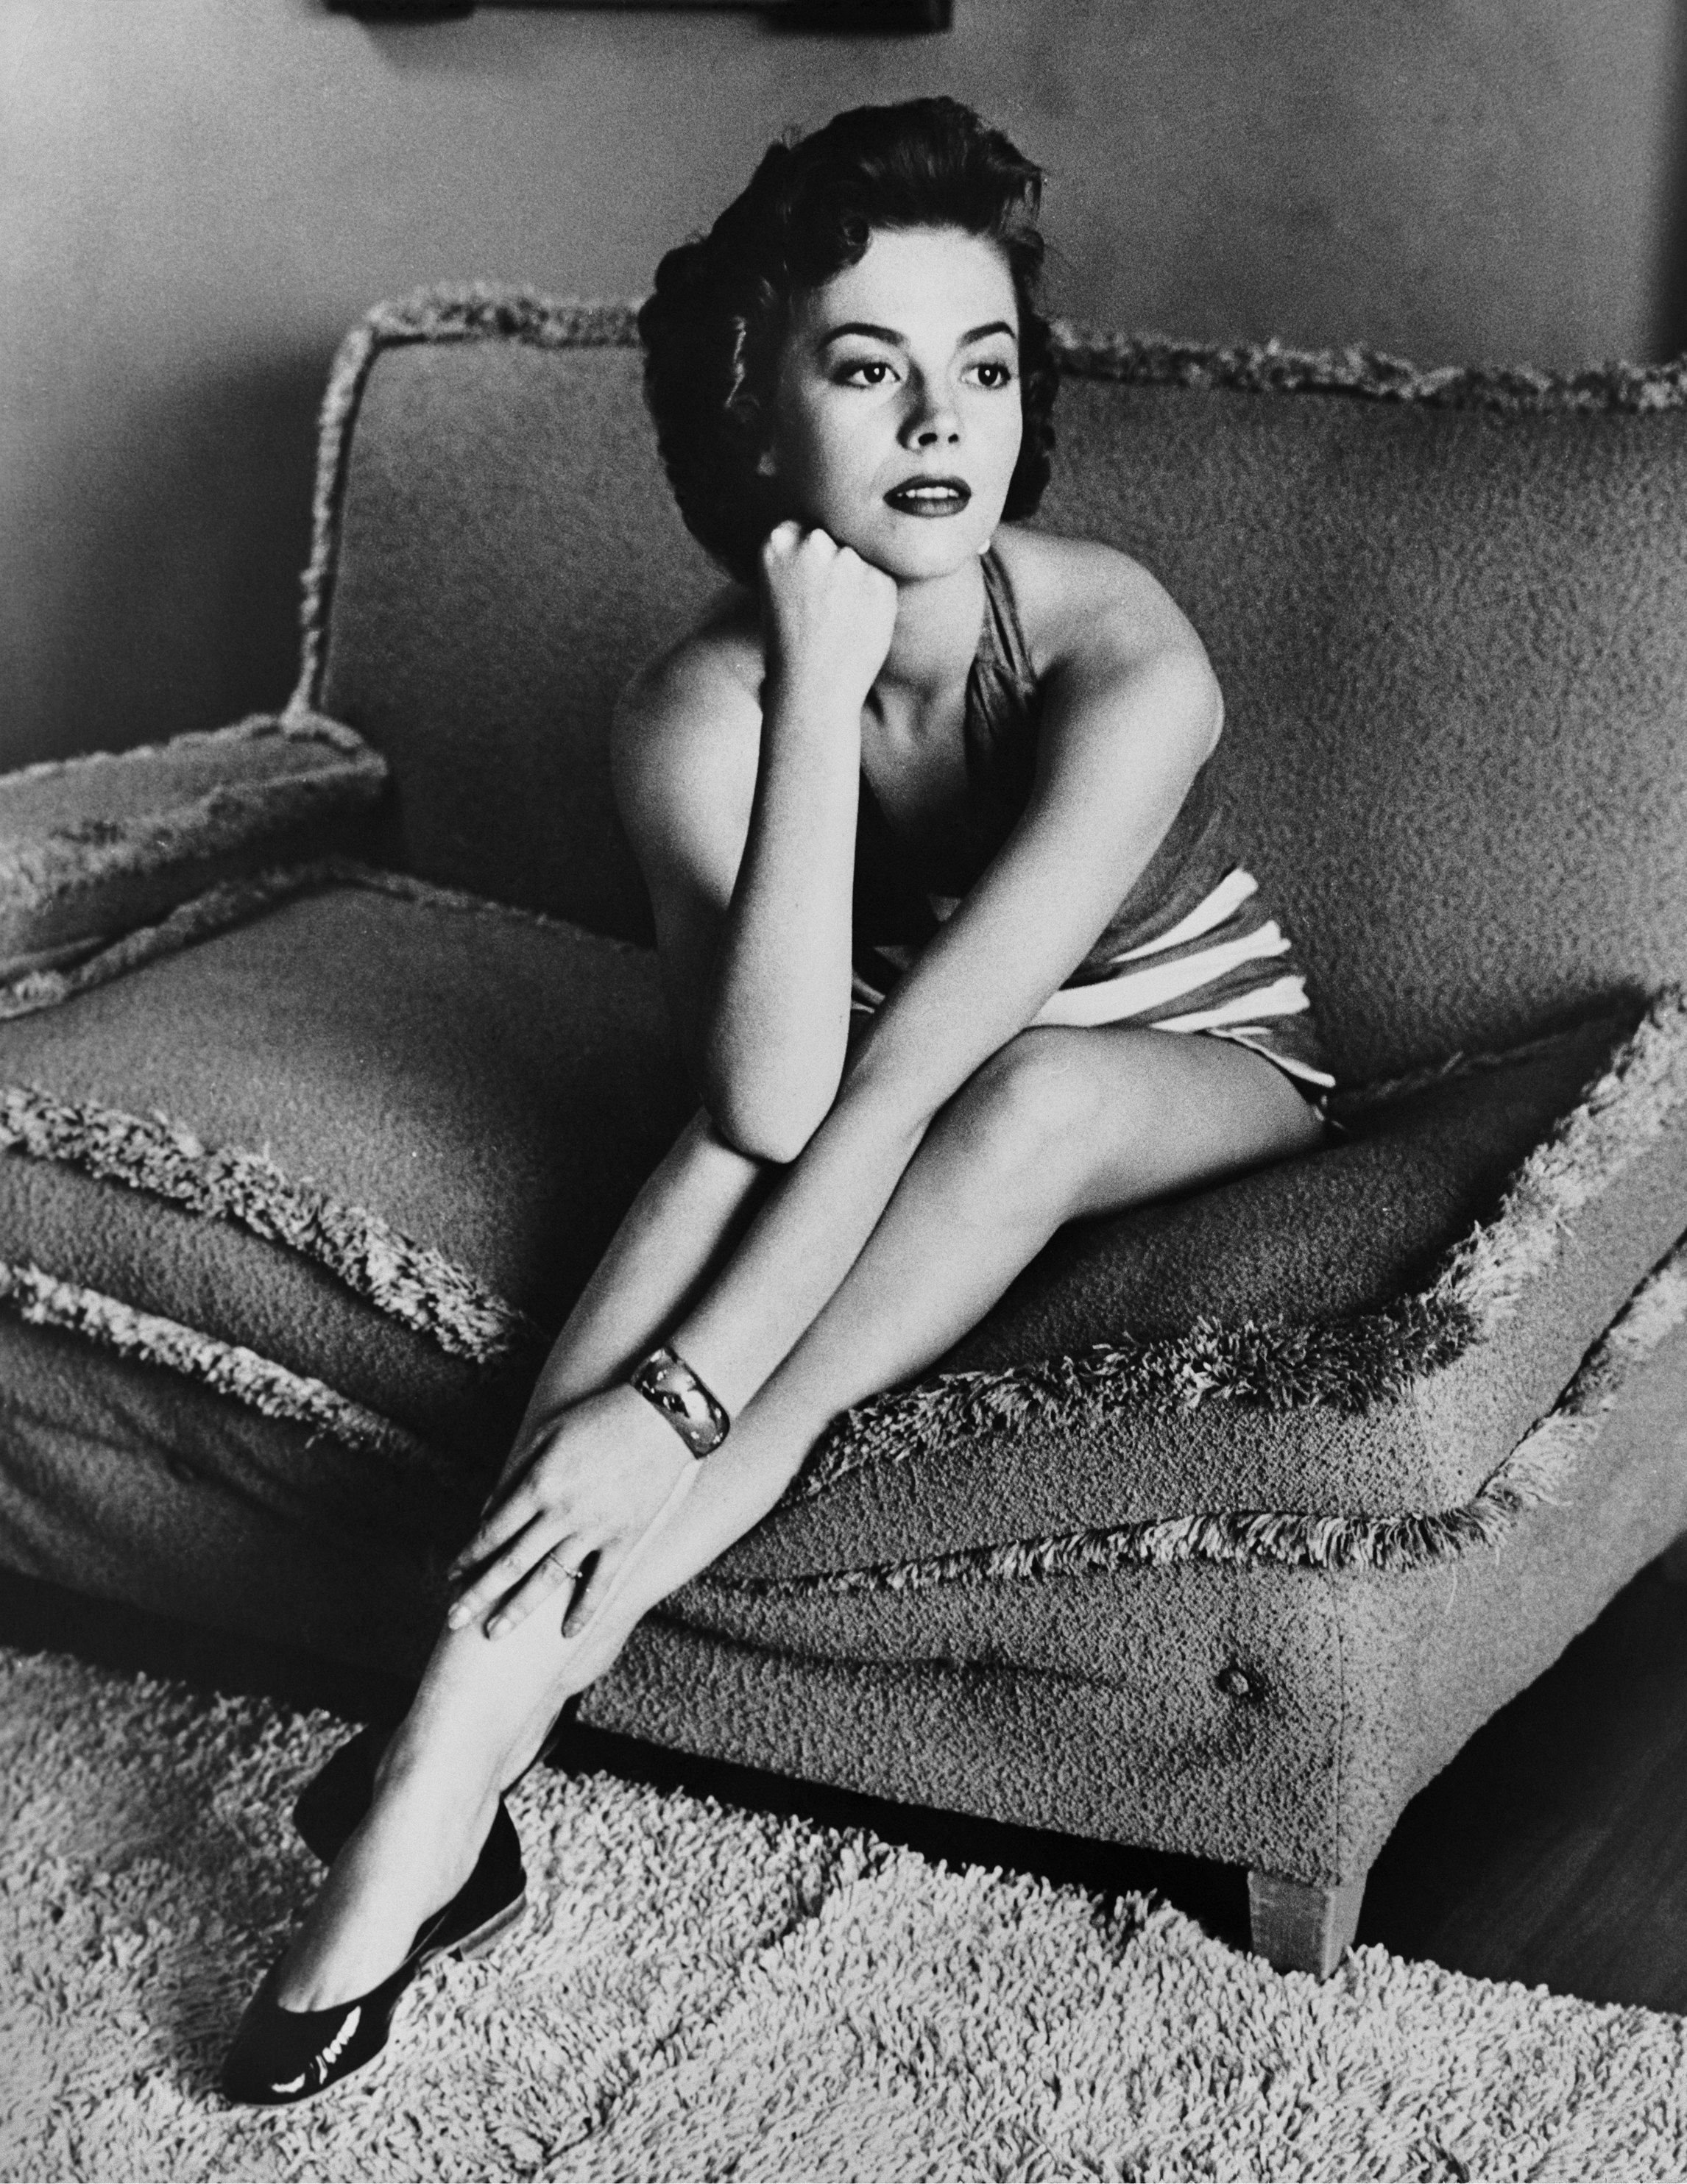 Natalie Wood poses for a portrait session at home in 1952 in Los Angeles, California. | Source: Getty Images